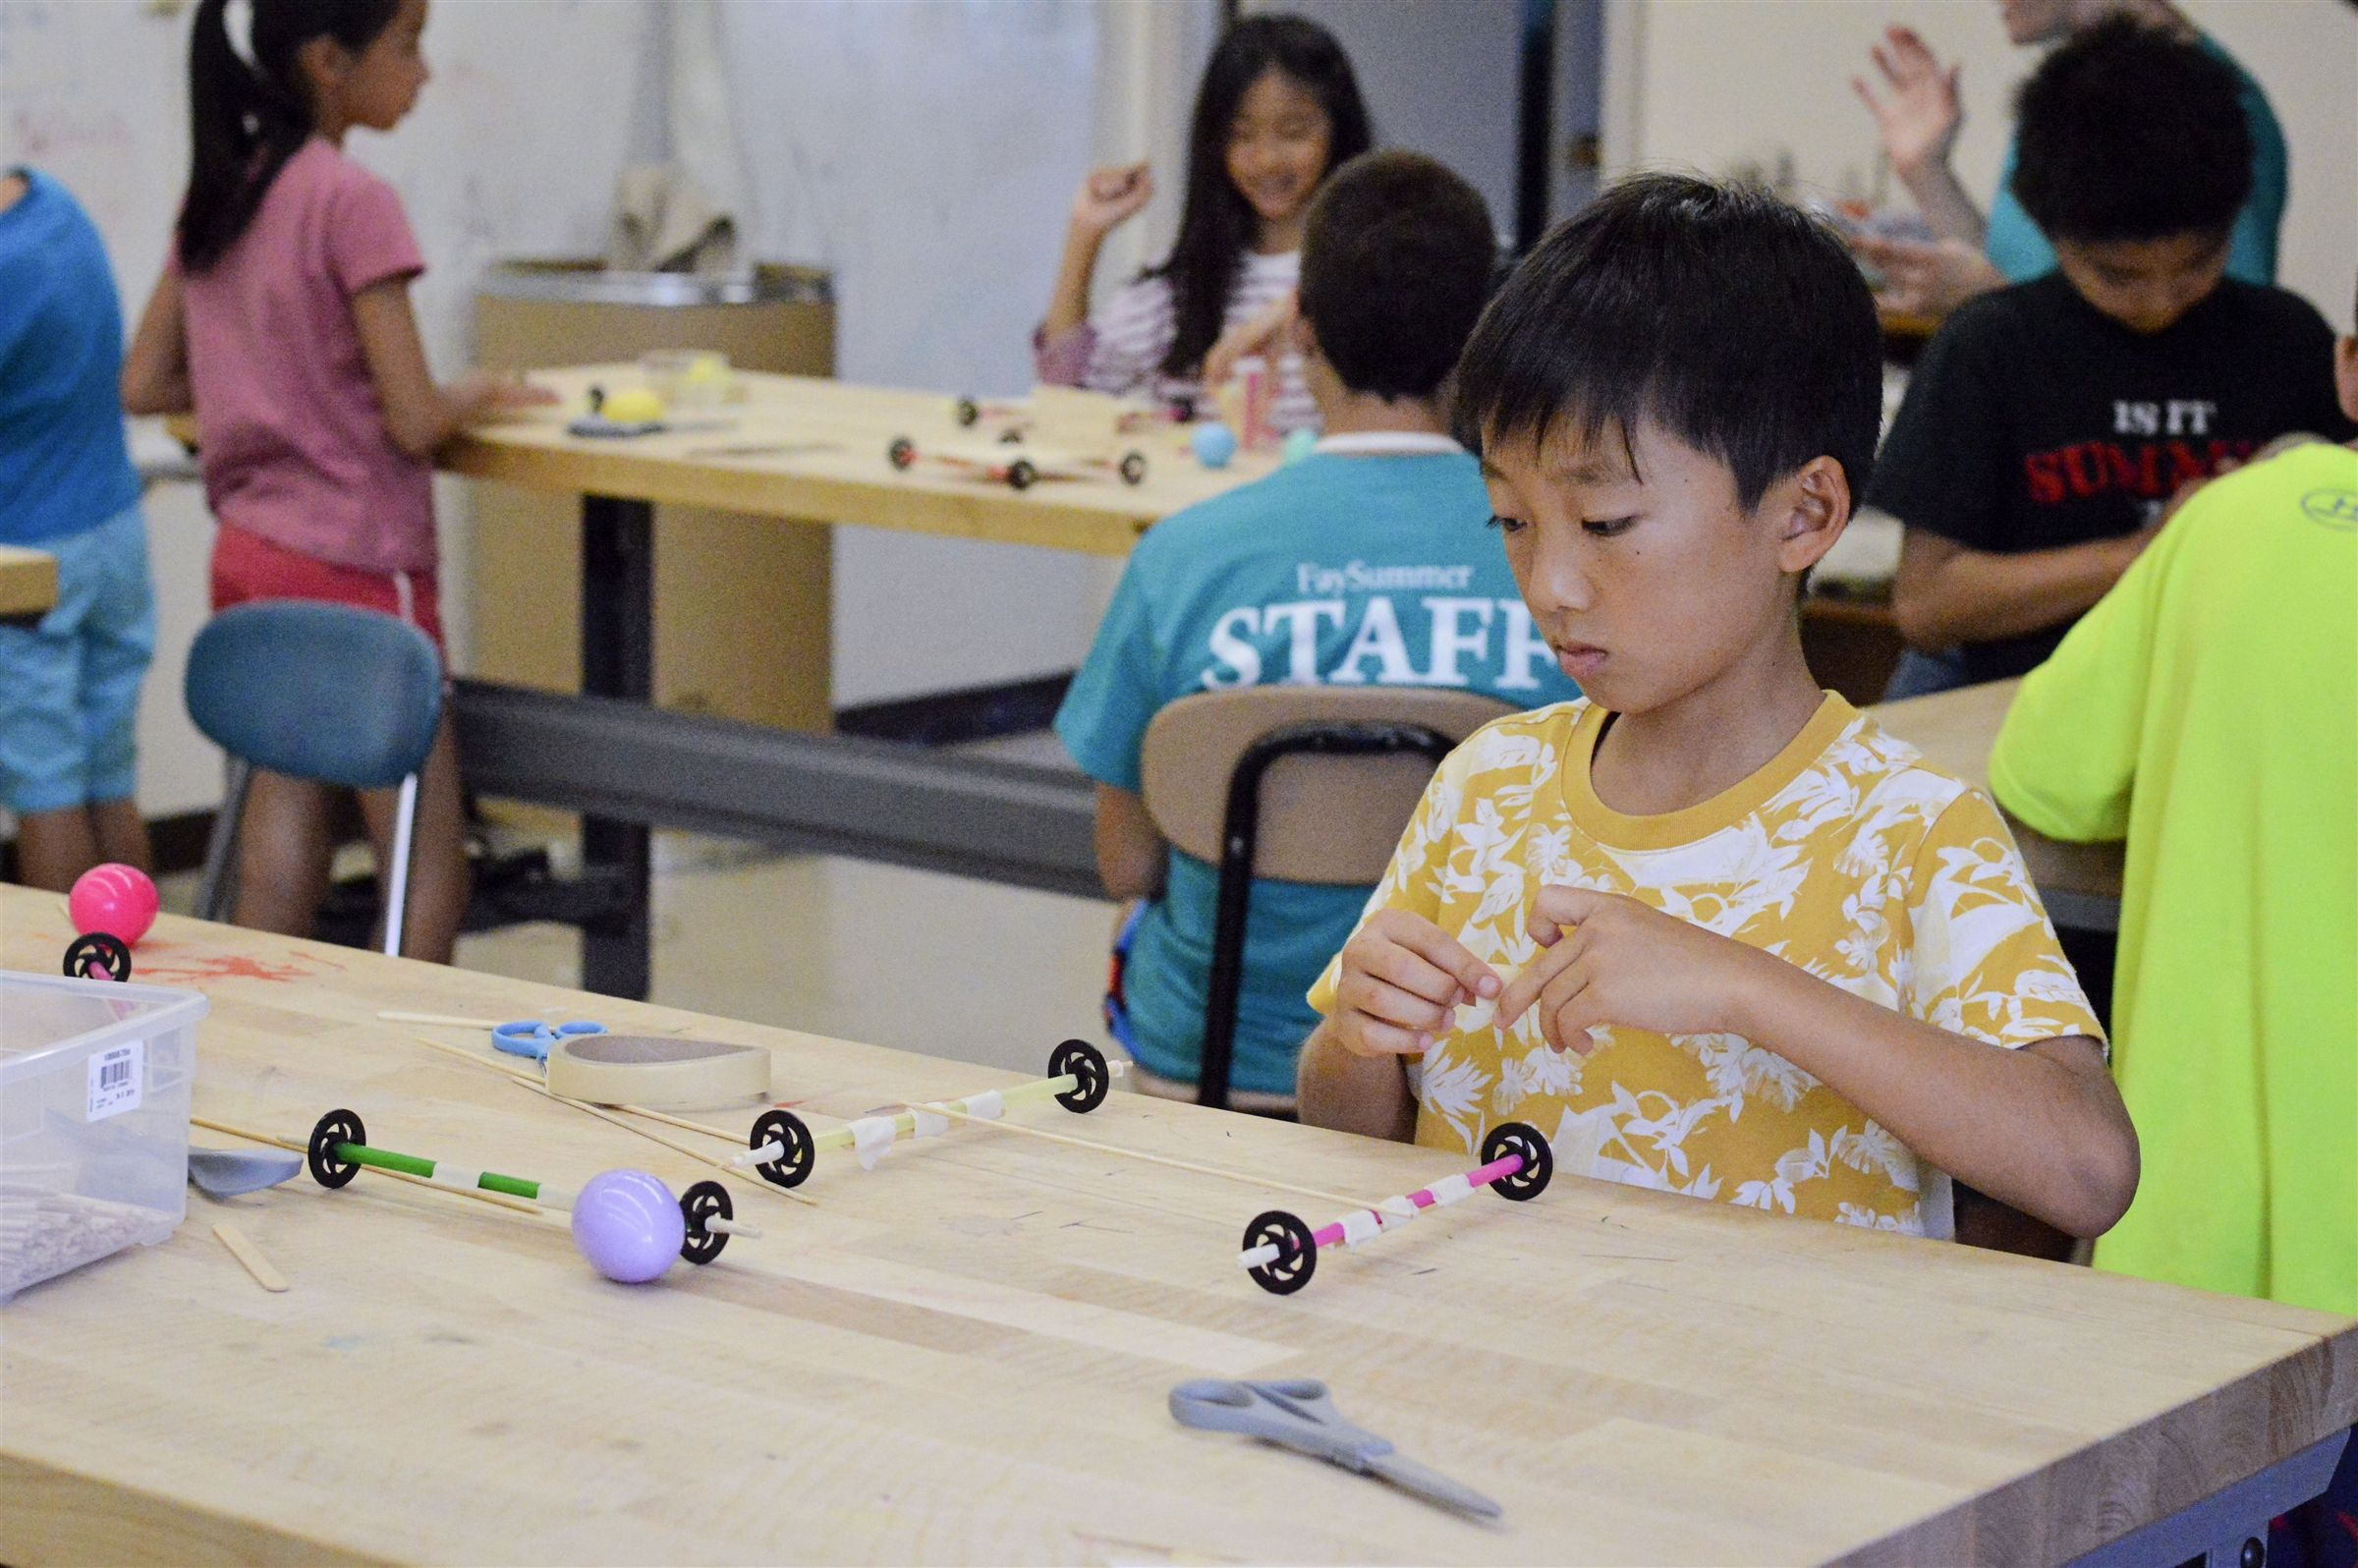 Campers have access to Fay's Innovation Lab, a 3,700 square-foot space that includes everything you need for inventing and making. Campers have opportunities throughout the summer to design and build in this safe and supervised setting.